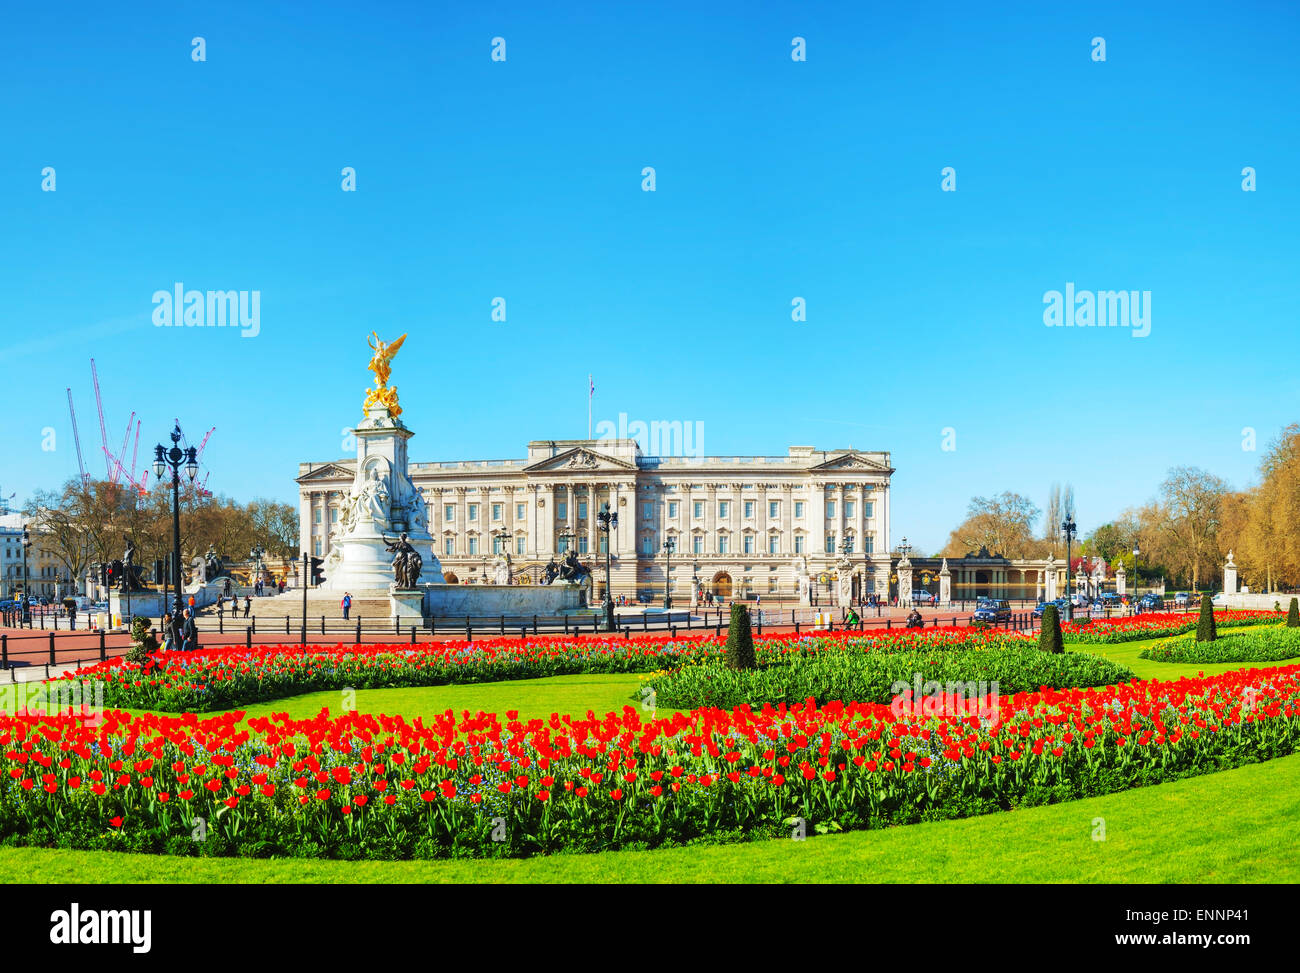 Buckingham palace panoramic overview in London, United Kingdom on a sunny day - Stock Image